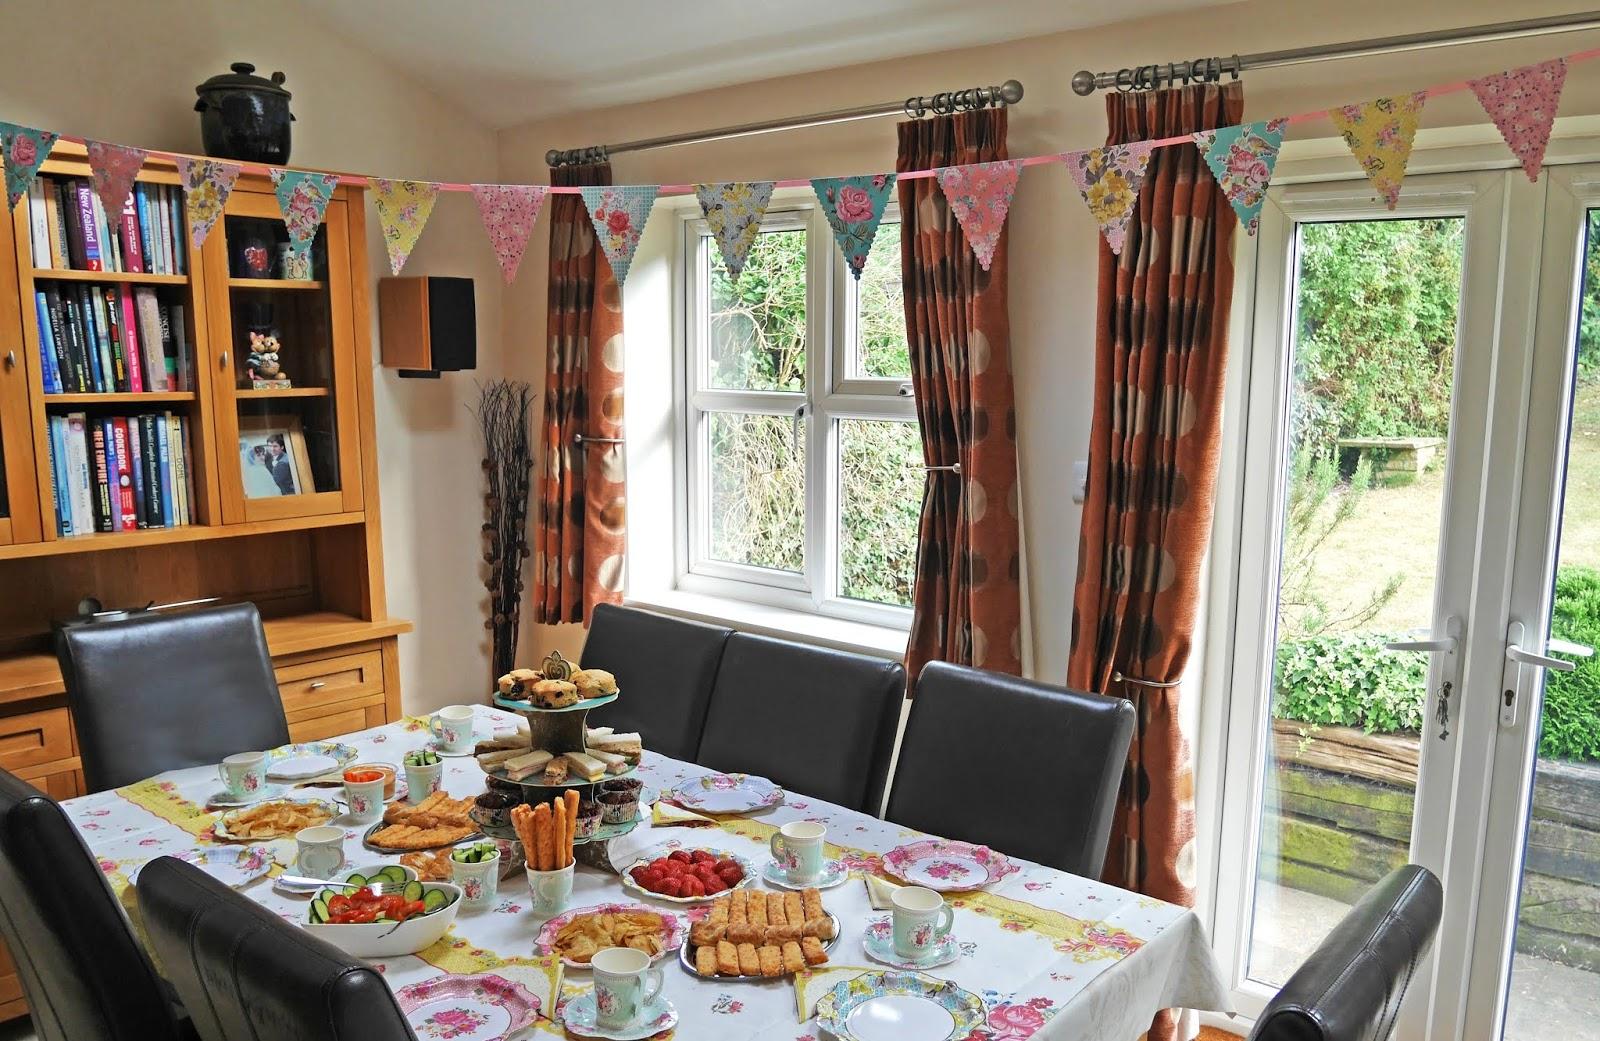 DIY British afternoon tea in collaboration with Talking Tables